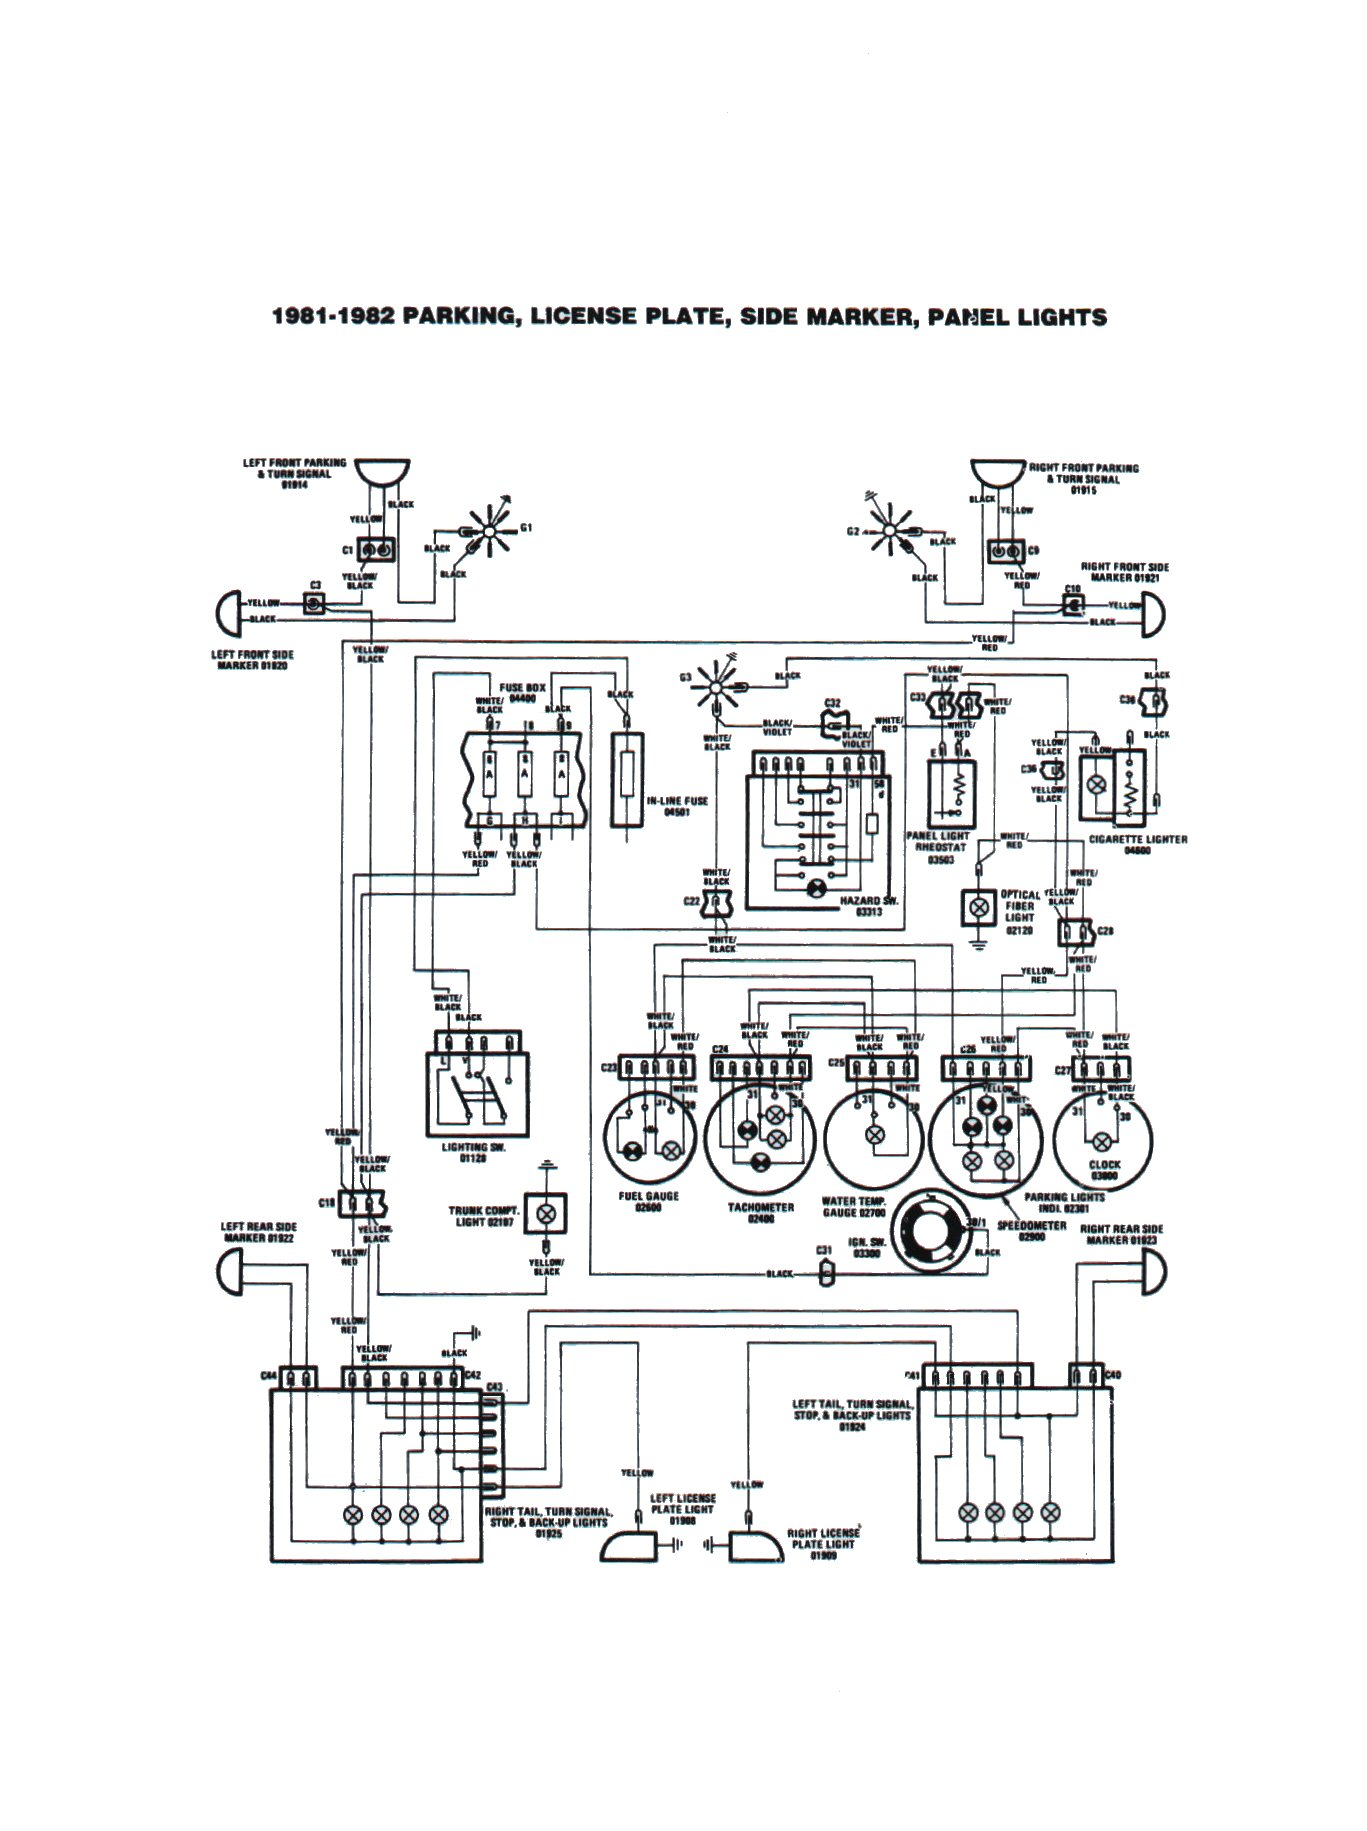 Technical Advice Download Free Schematic 43 1980 81 Spider Page